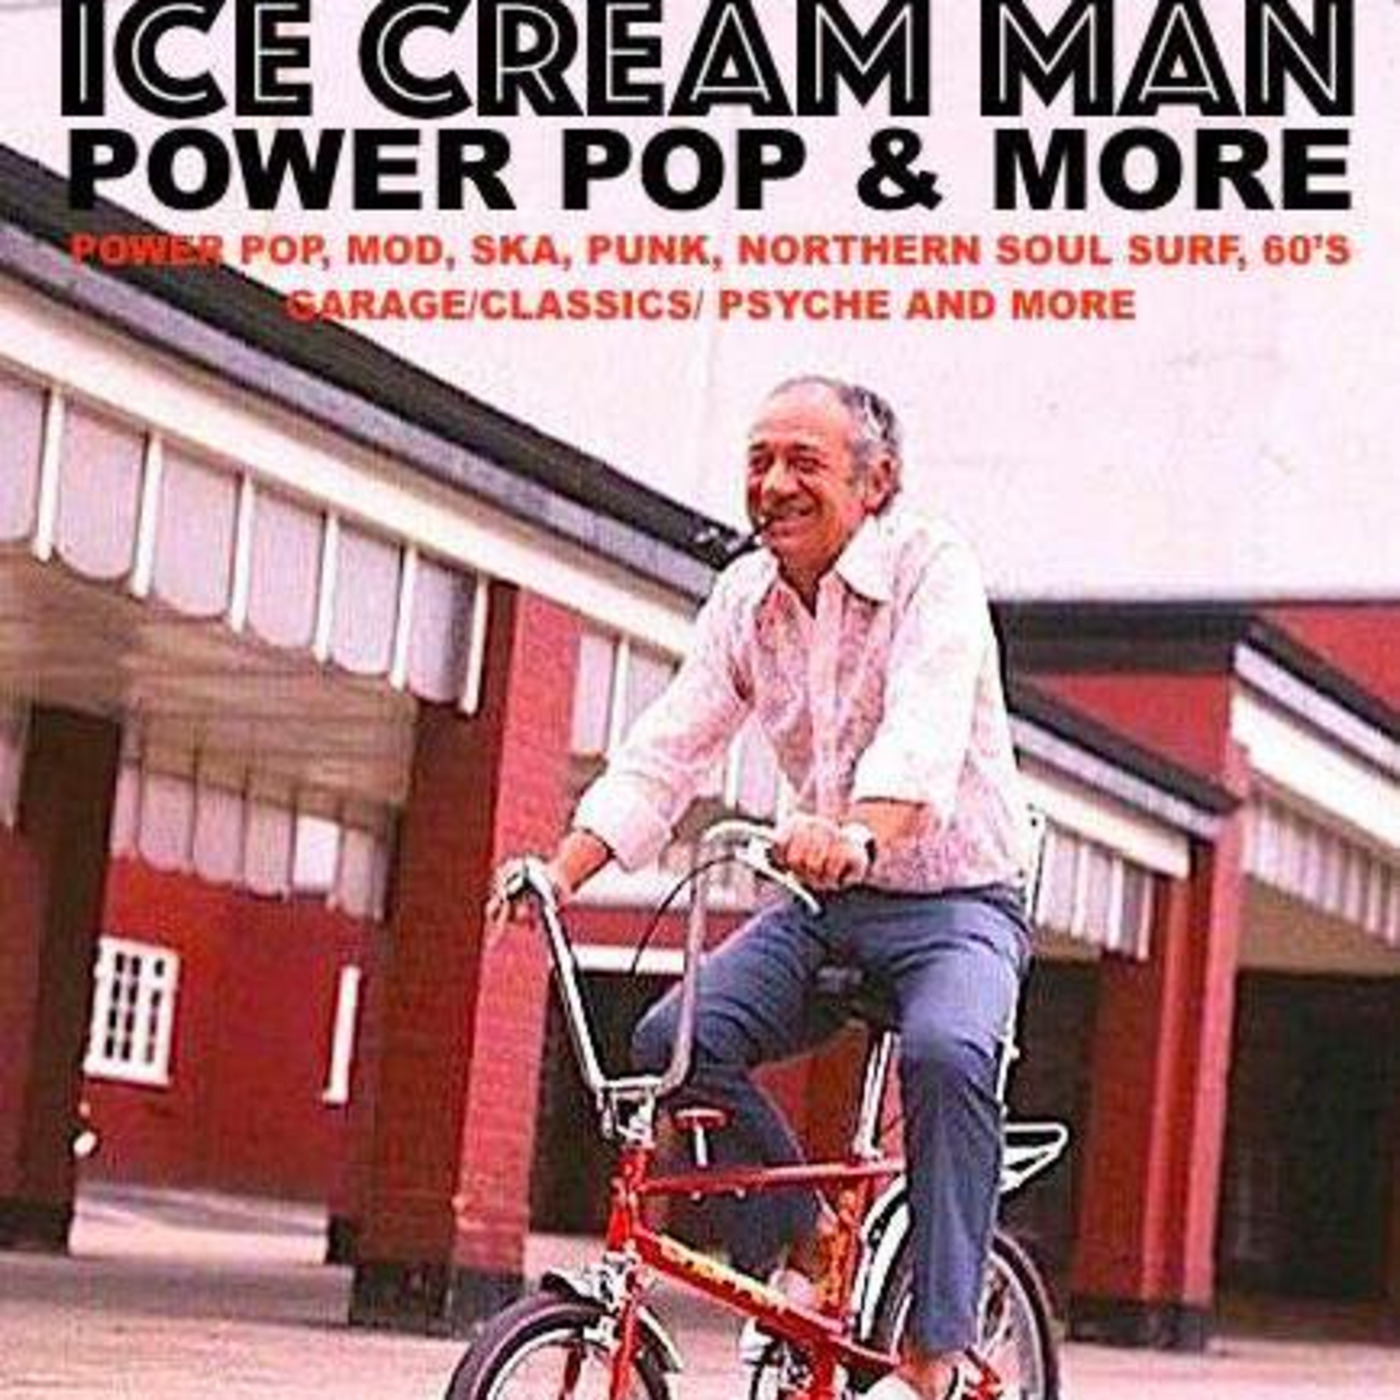 Ice Cream Man Power Pop and More #293